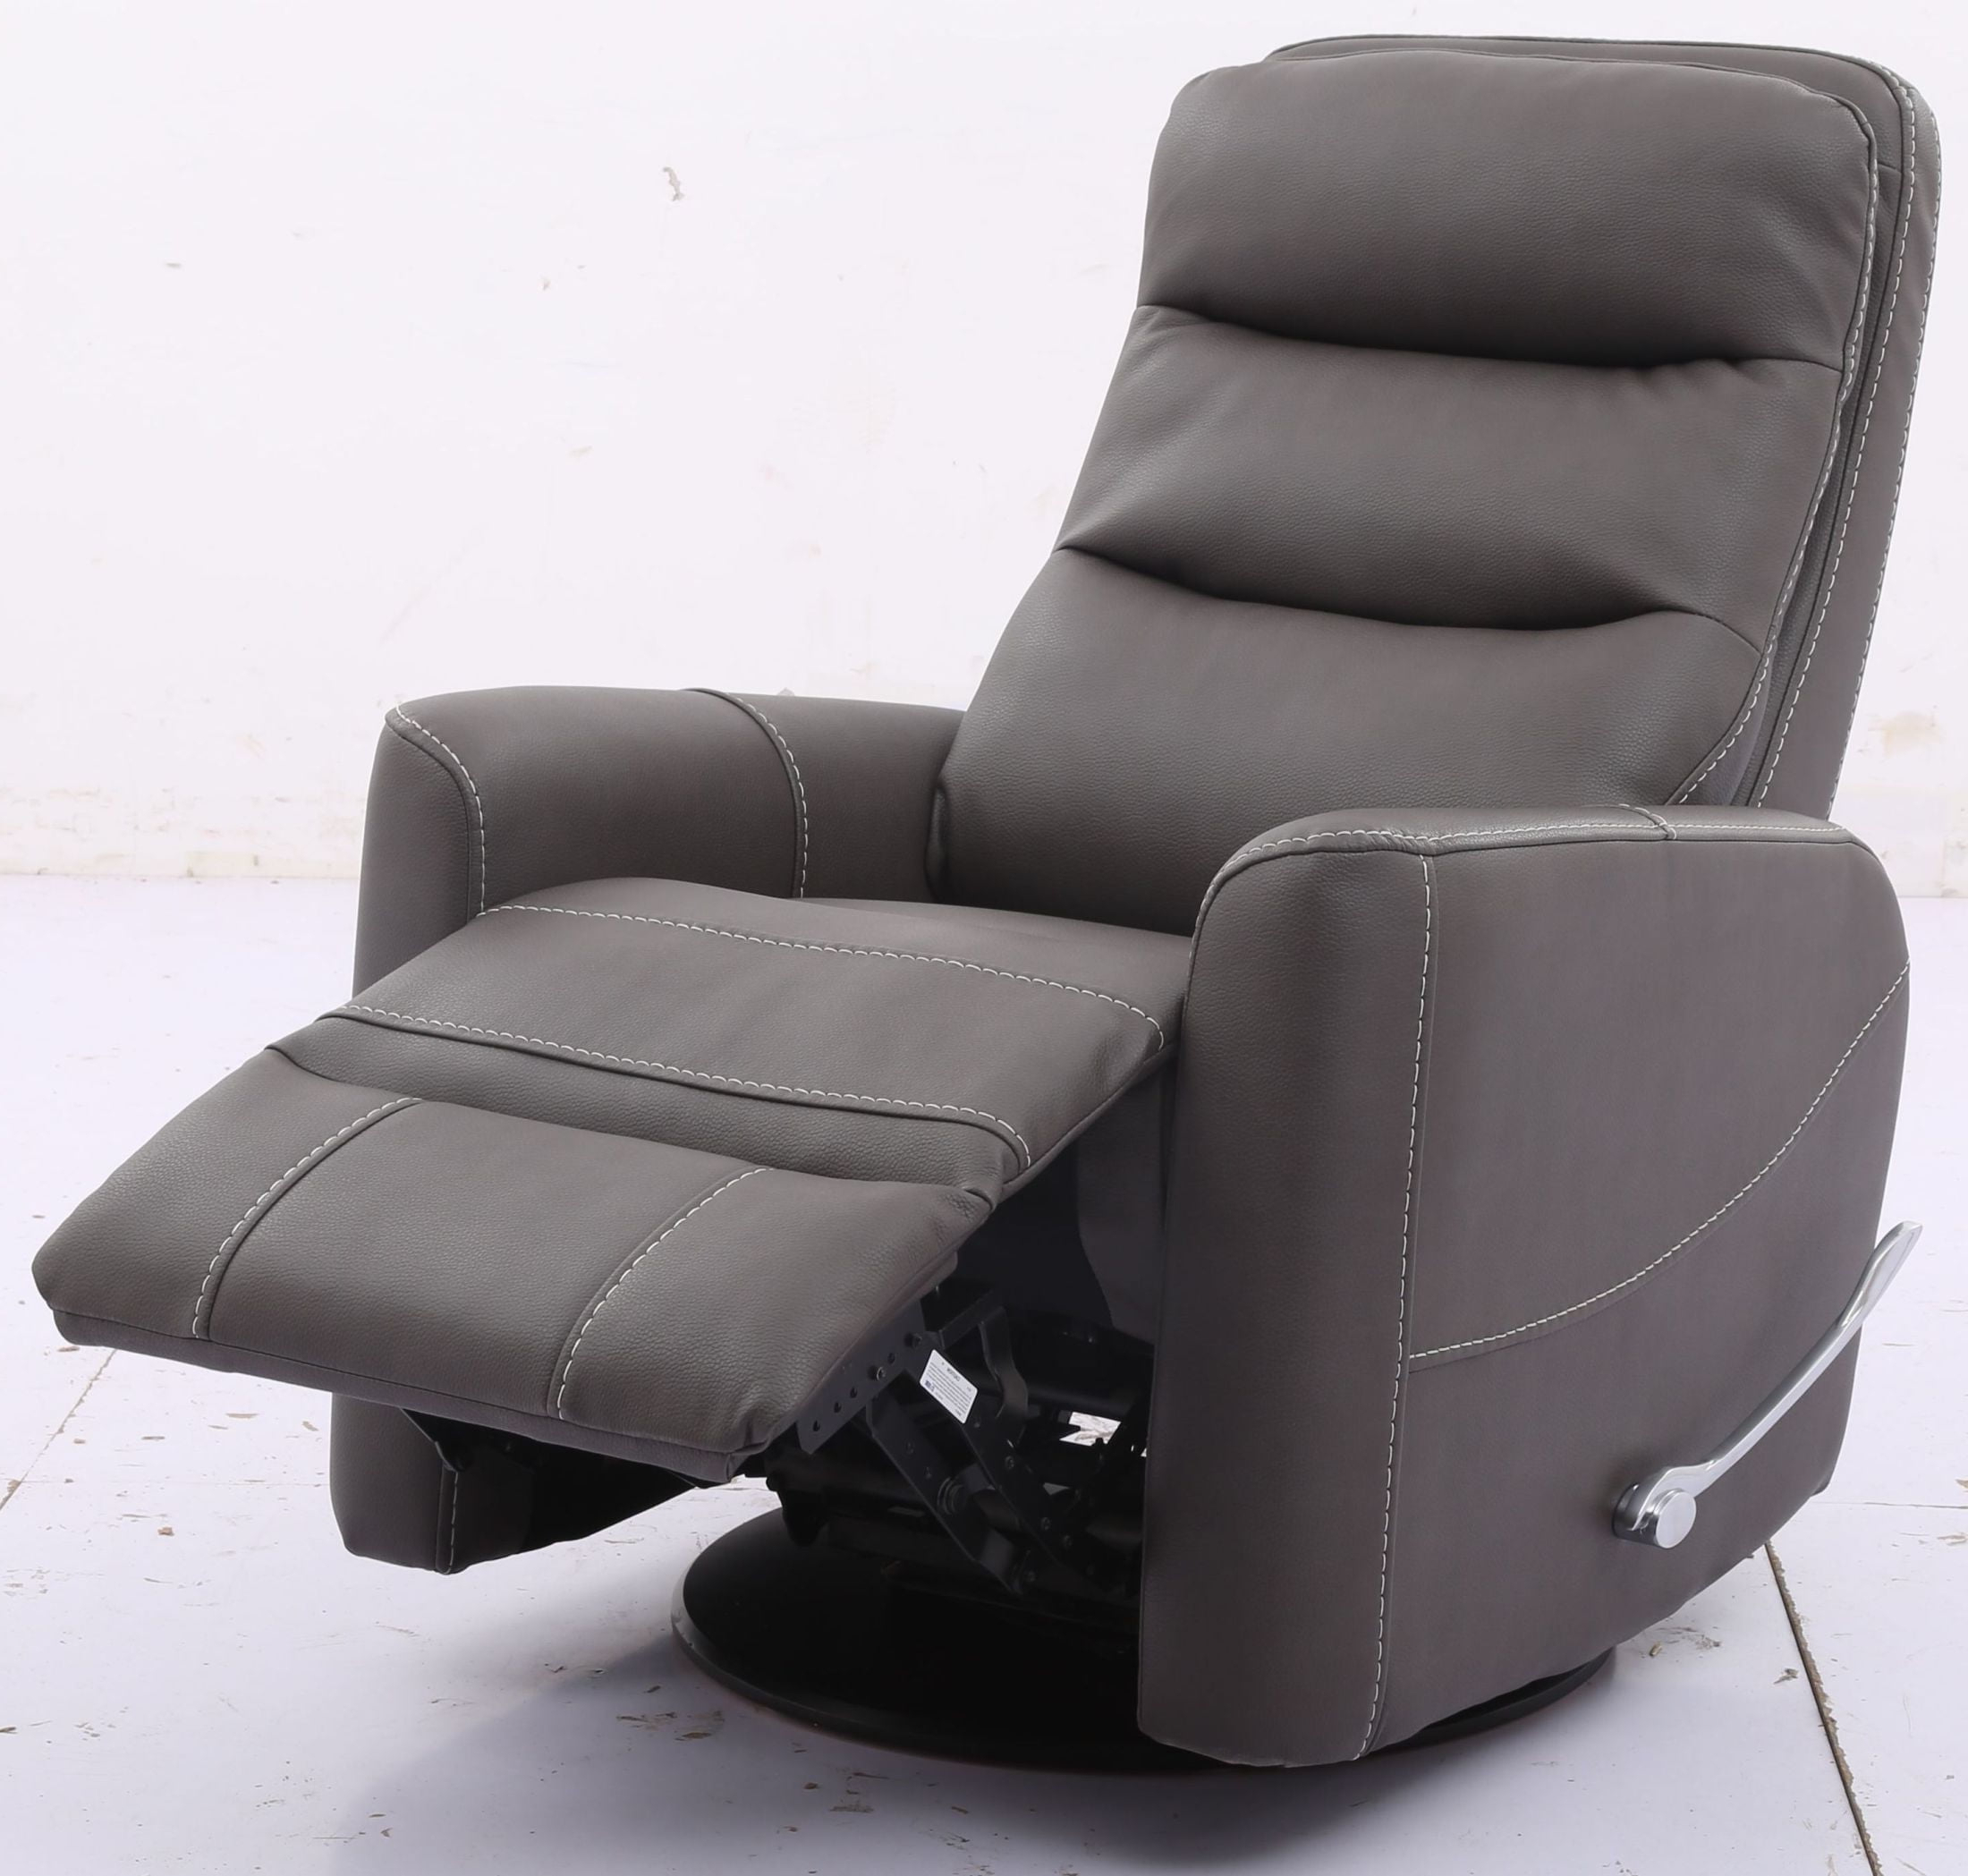 Popular Hercules Haze Swivel Glider Recliner With Articulating Headrest From Pertaining To Hercules Grey Swivel Glider Recliners (View 20 of 20)